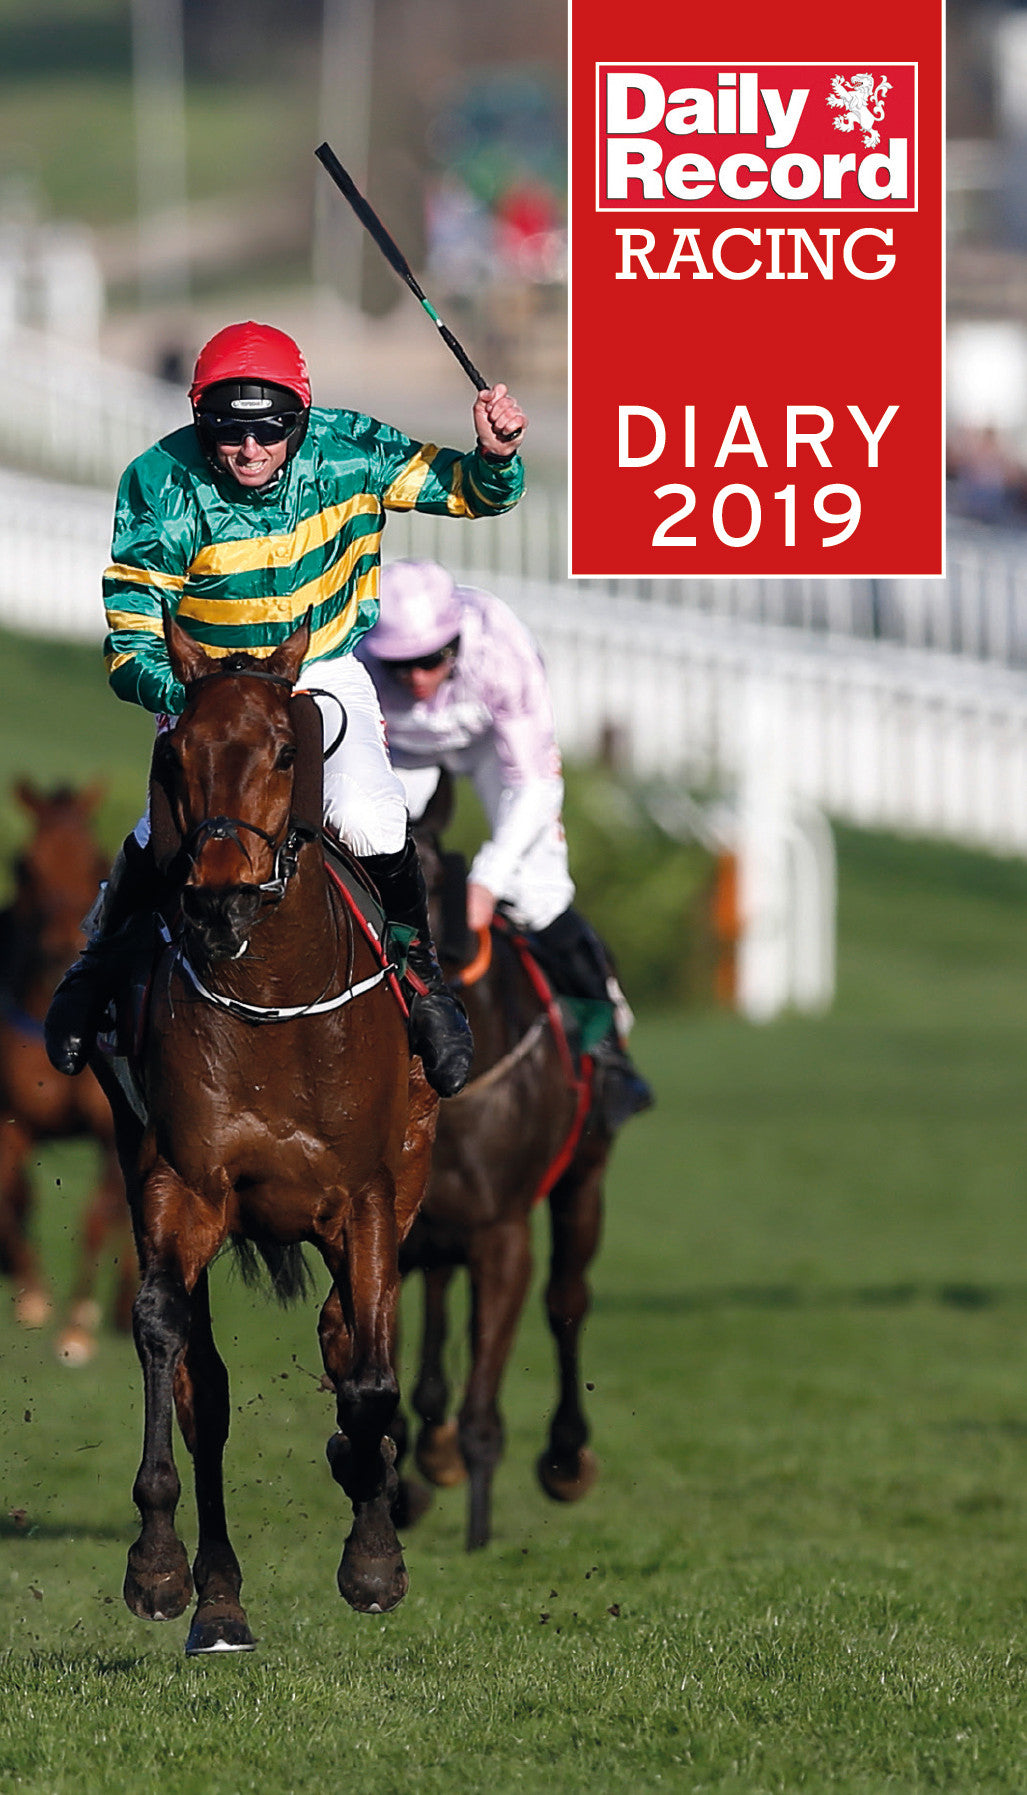 Daily Record Racing Diary 2019